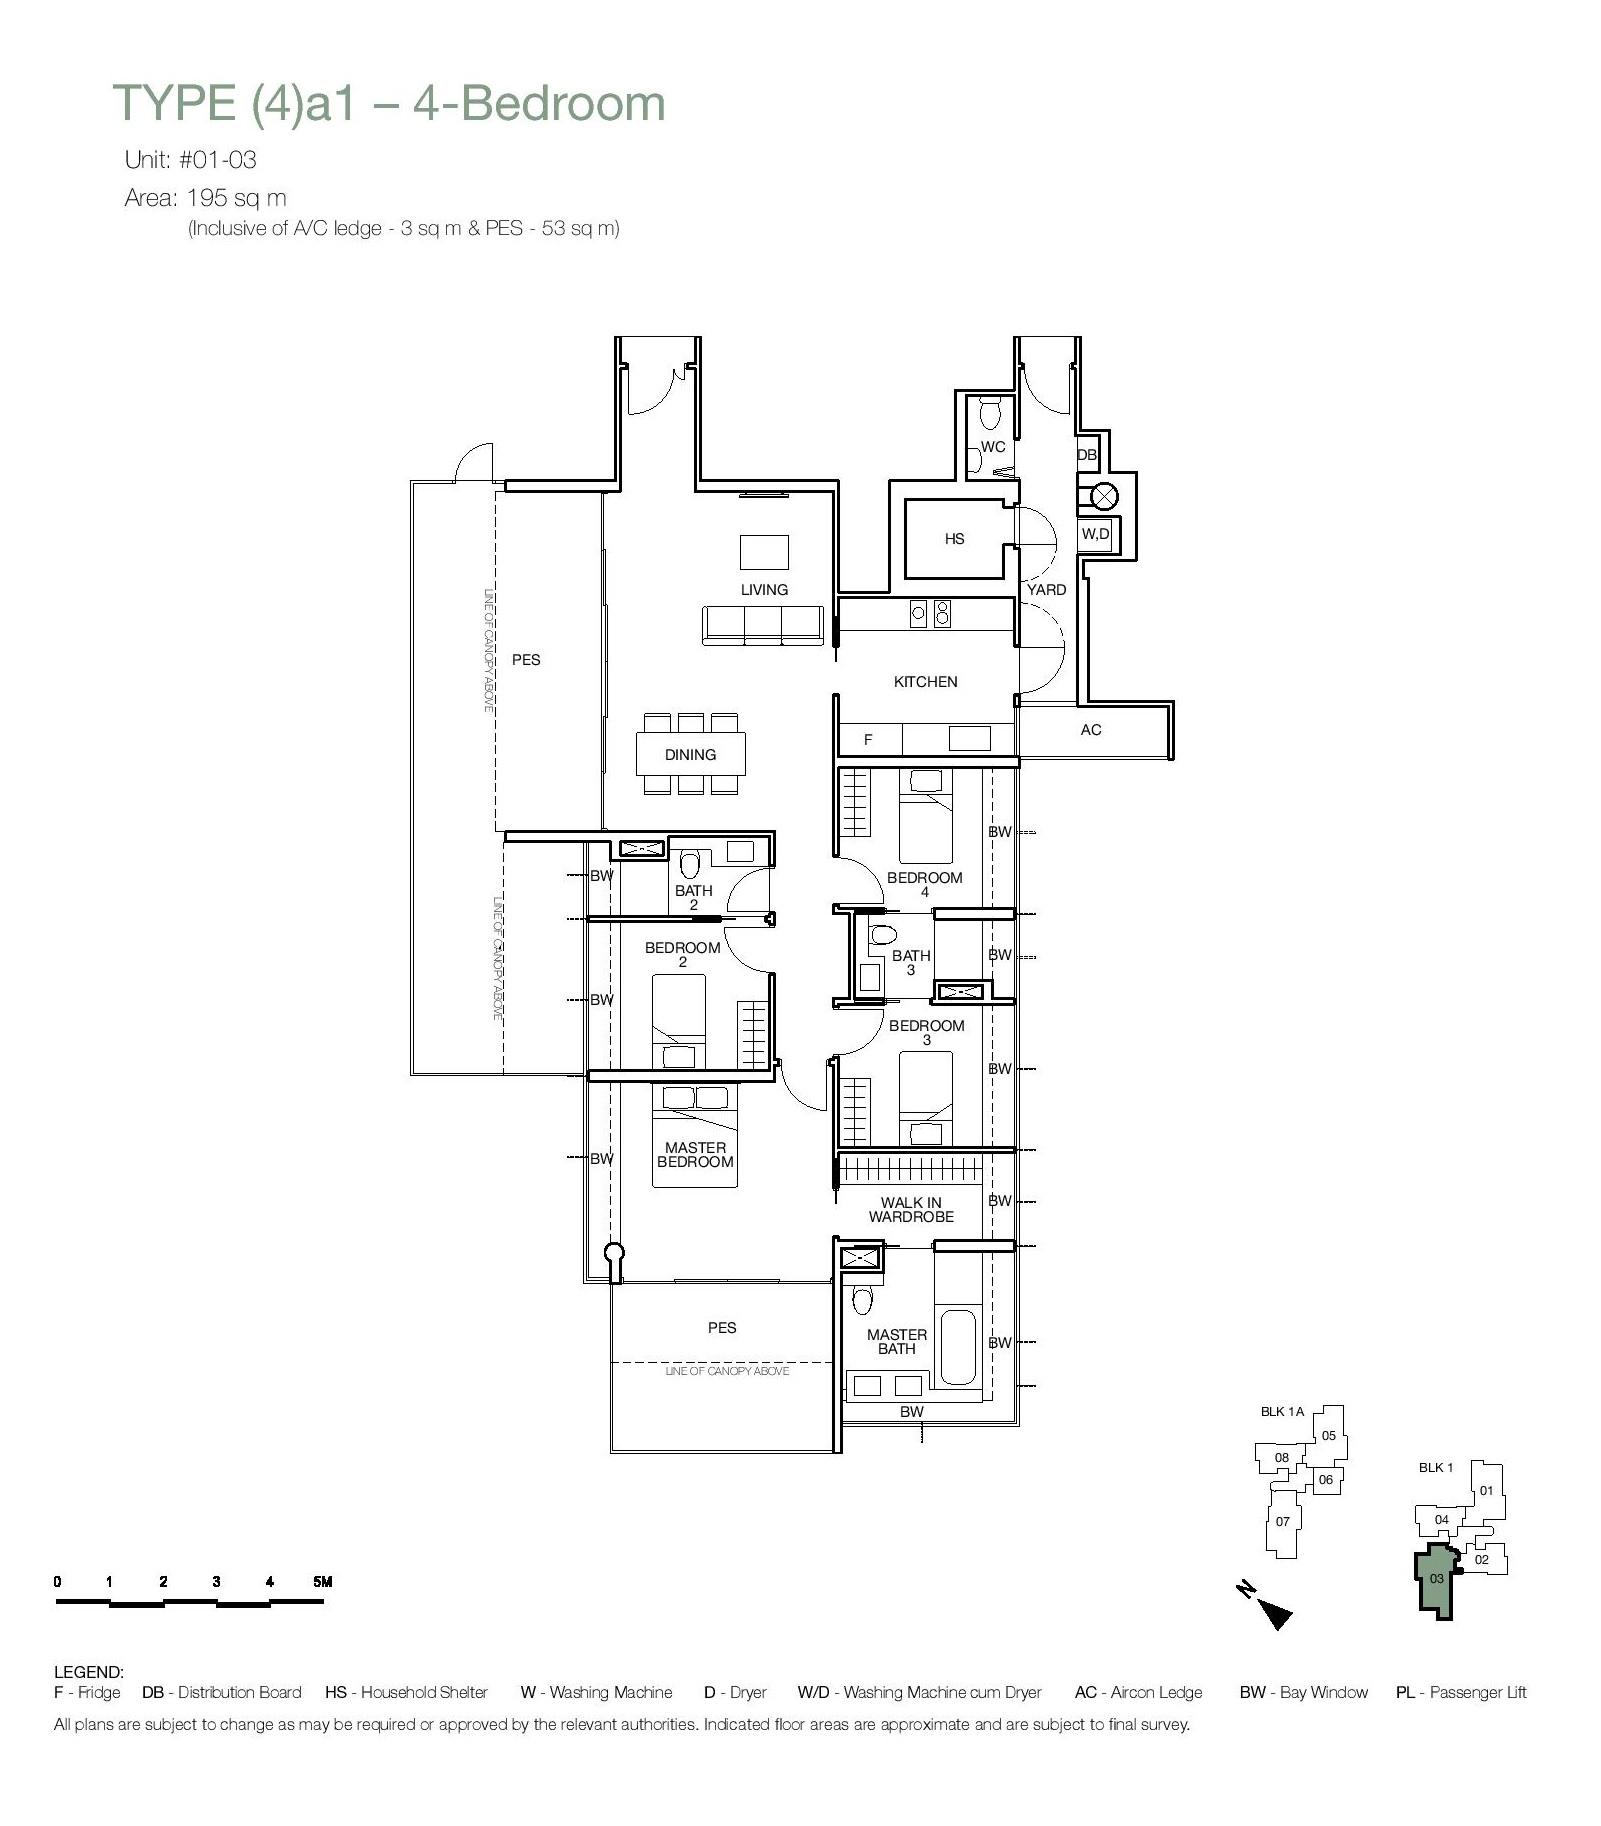 One Balmoral 4 Bedroom Floor Type (4)a1 Plans